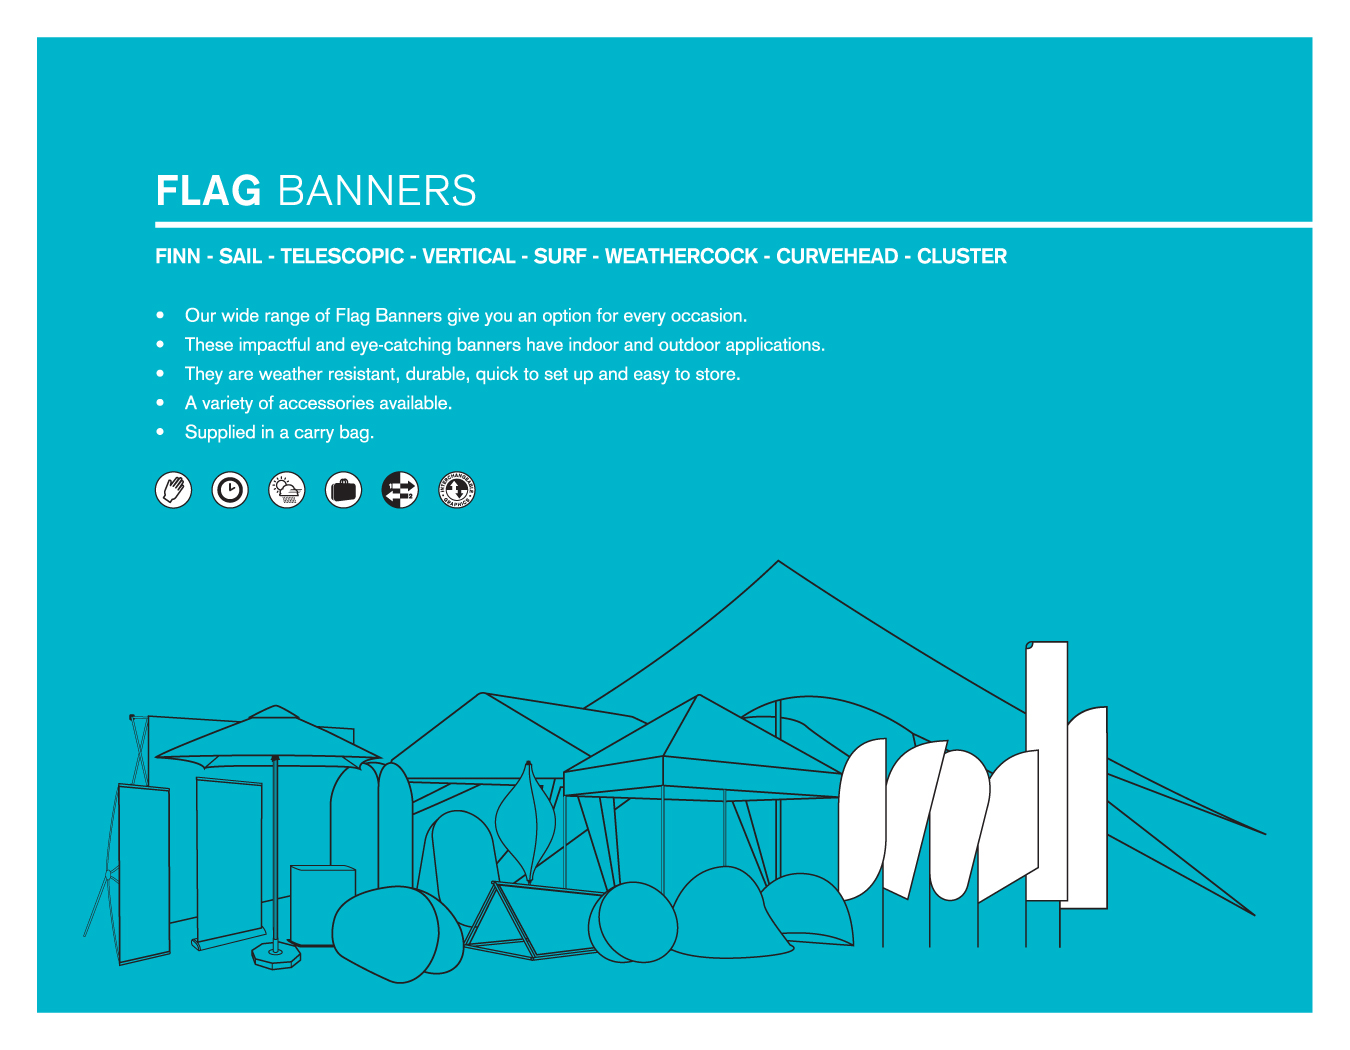 Portfolio image for BFBD Banners - Flag Banners